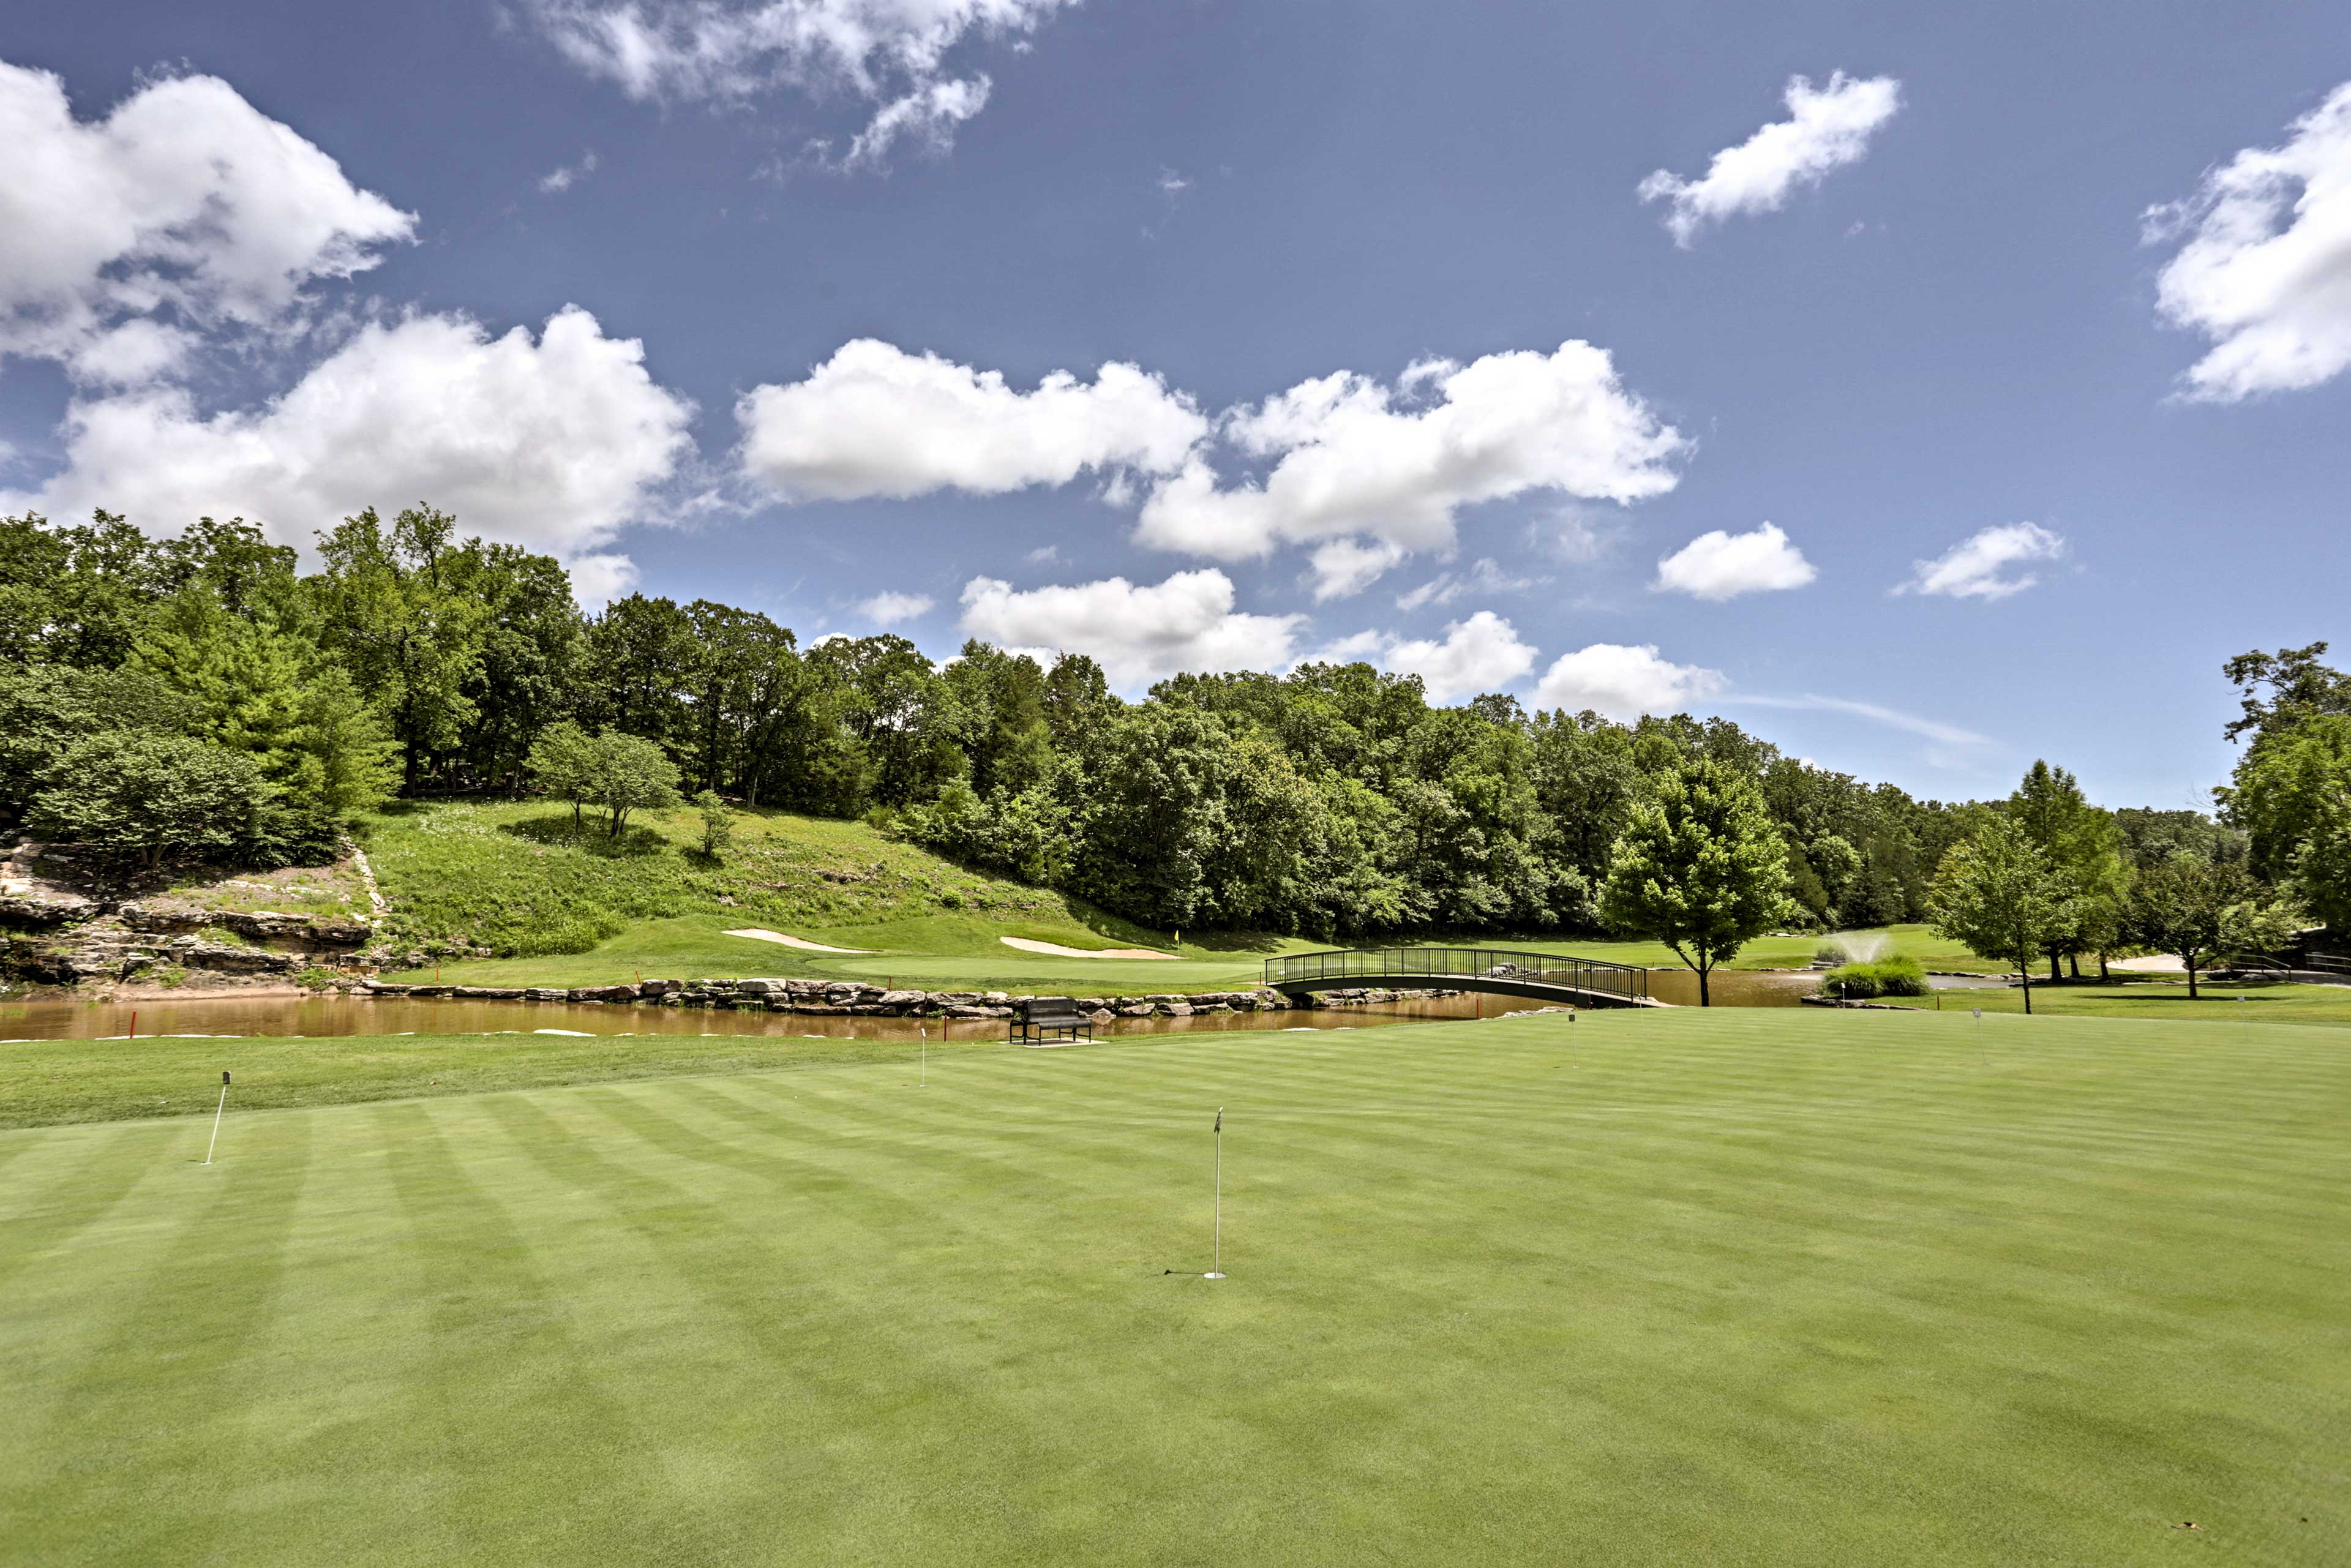 Spend a peaceful morning on the golf course.